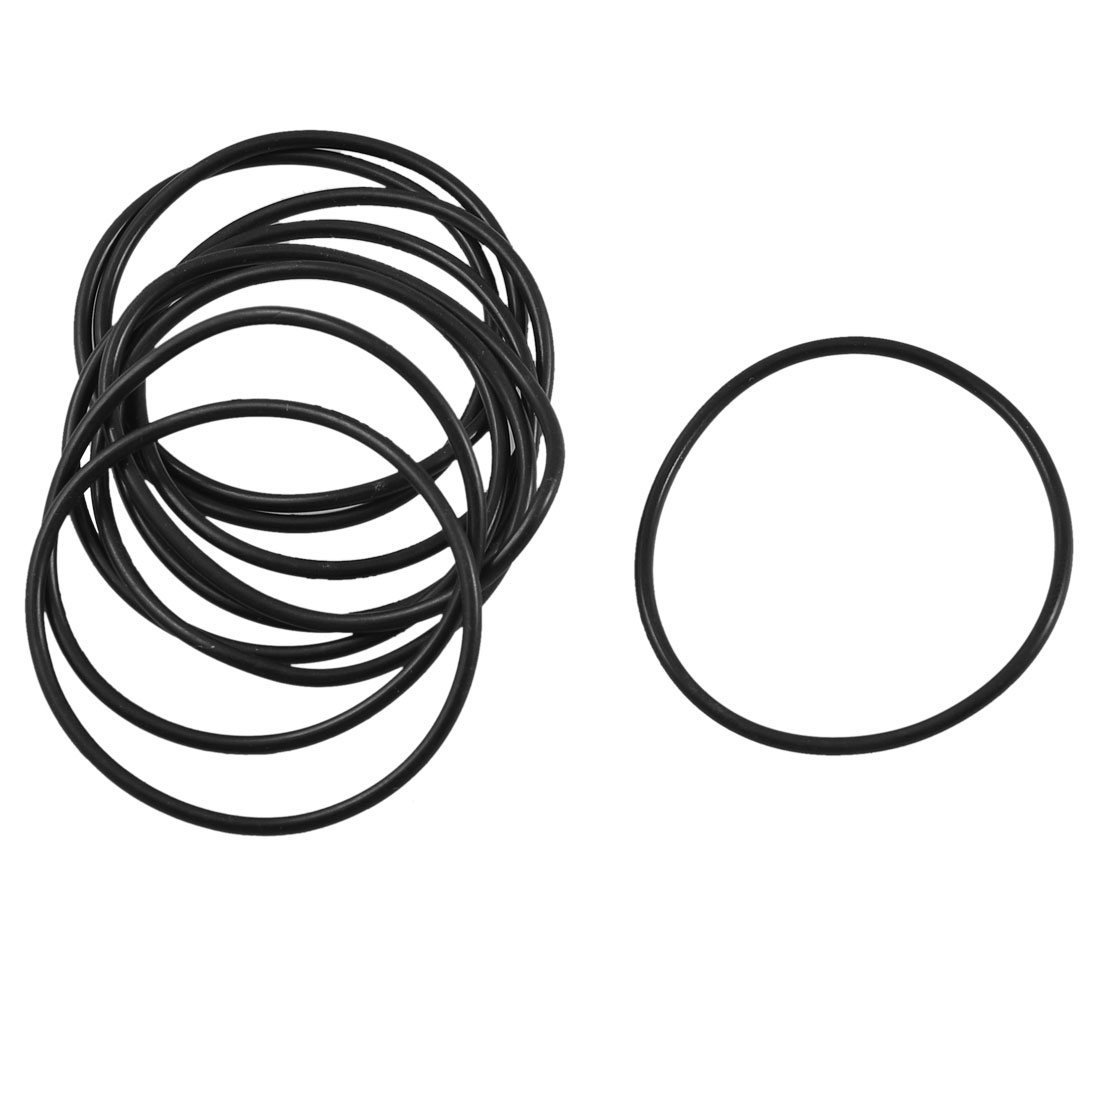 10 Pcs Black Rubber Oil Seal O Ring Sealing Gasket 37.5mm x 1.8mm